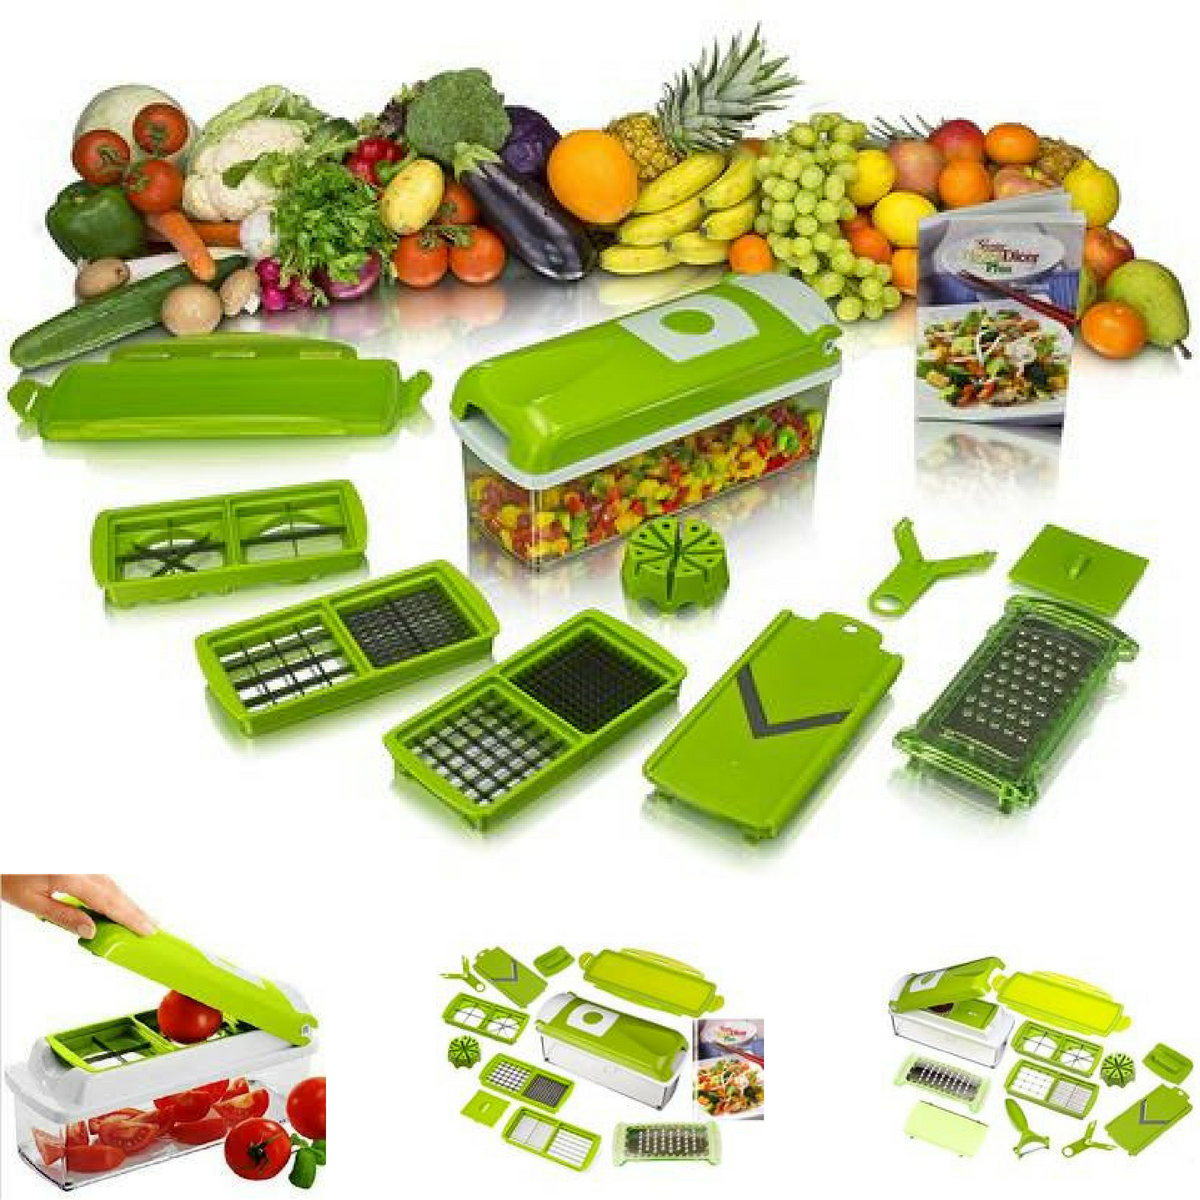 12 In 1 Multifunctional Dicer And Slicer